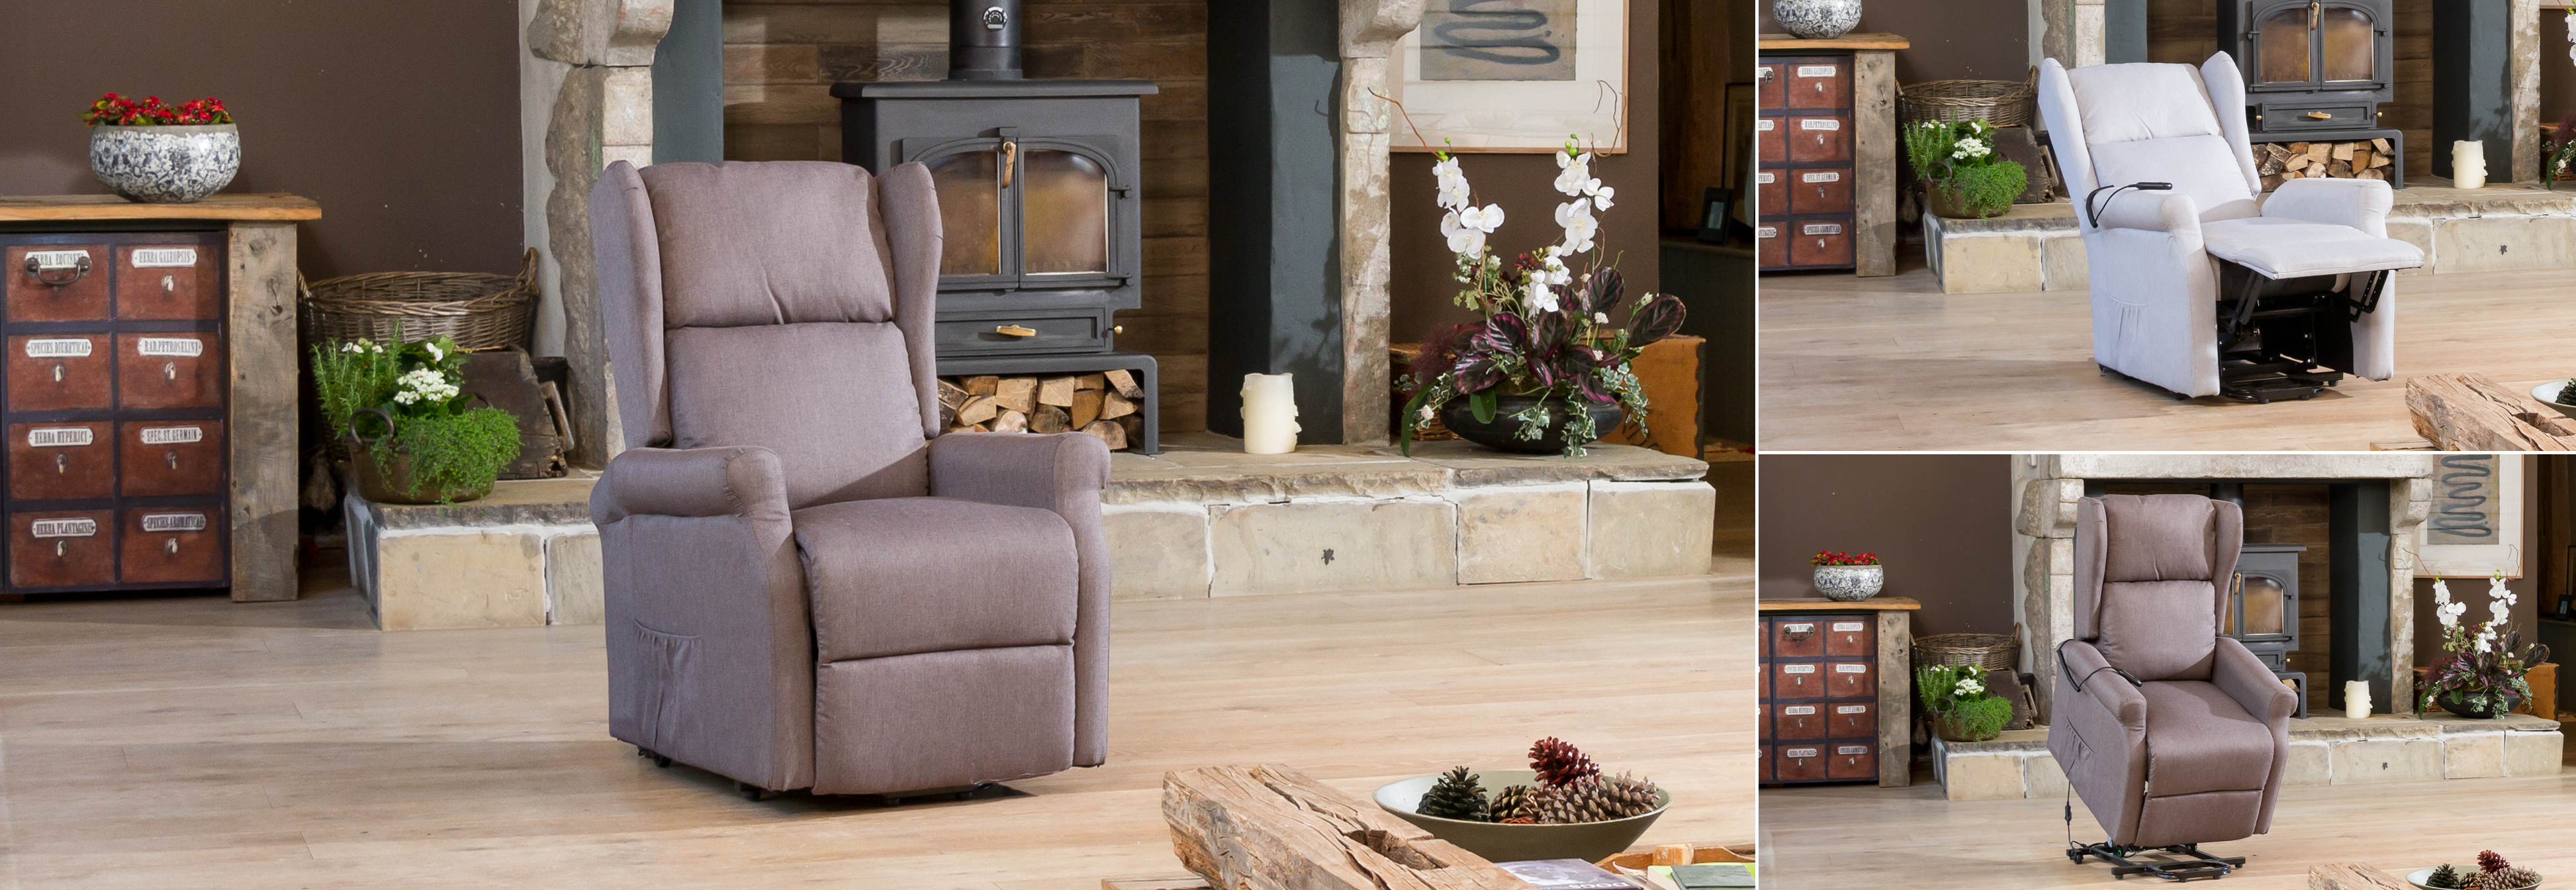 Sandhurst Riser Recliner with Massage and Heat dark grey